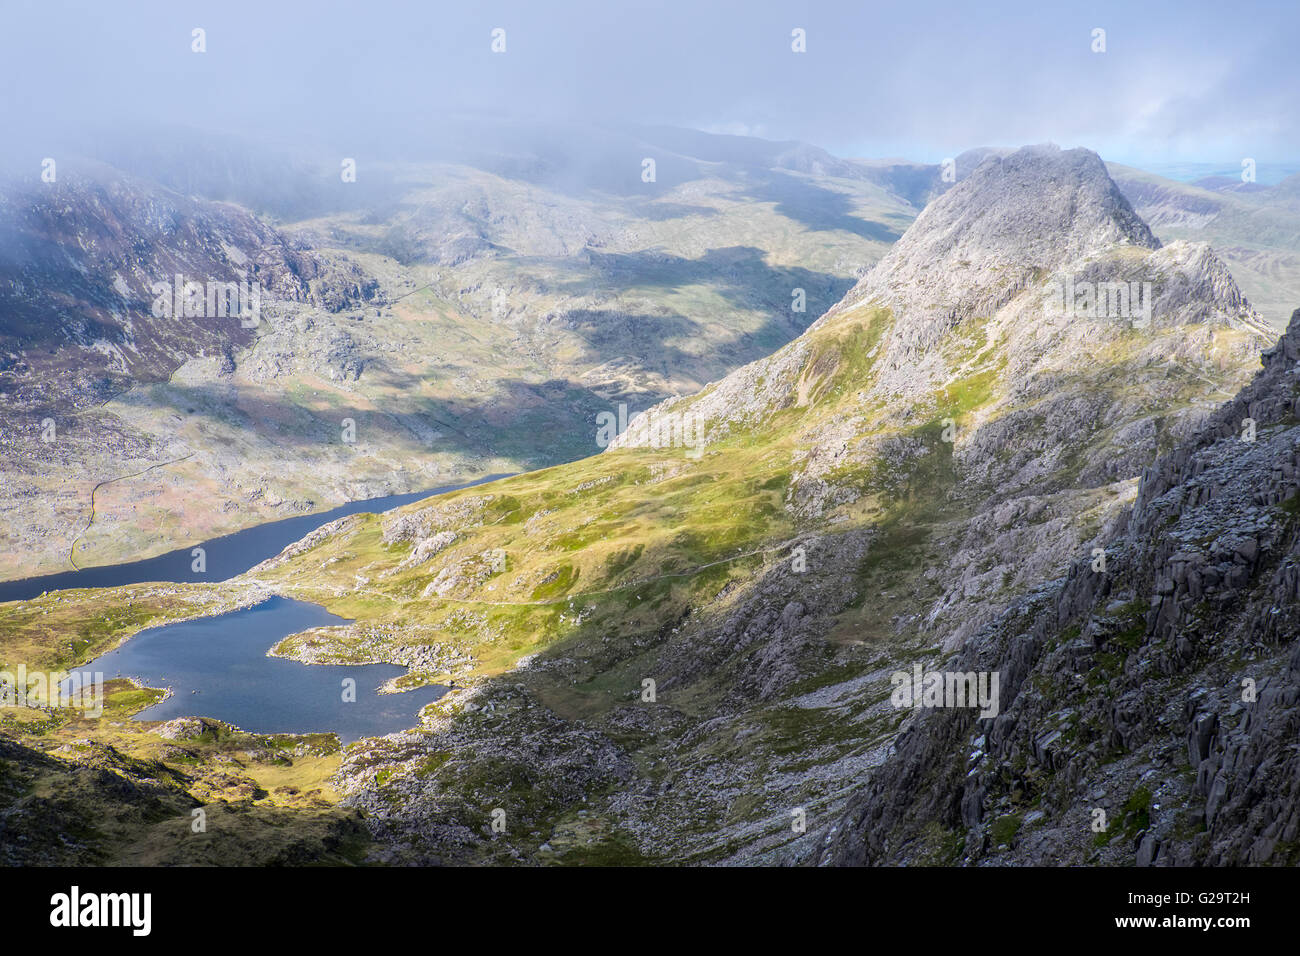 Tryfan mountain in Snowdonia,North Wales - a popular mountain for scrambling and climbing - Stock Image